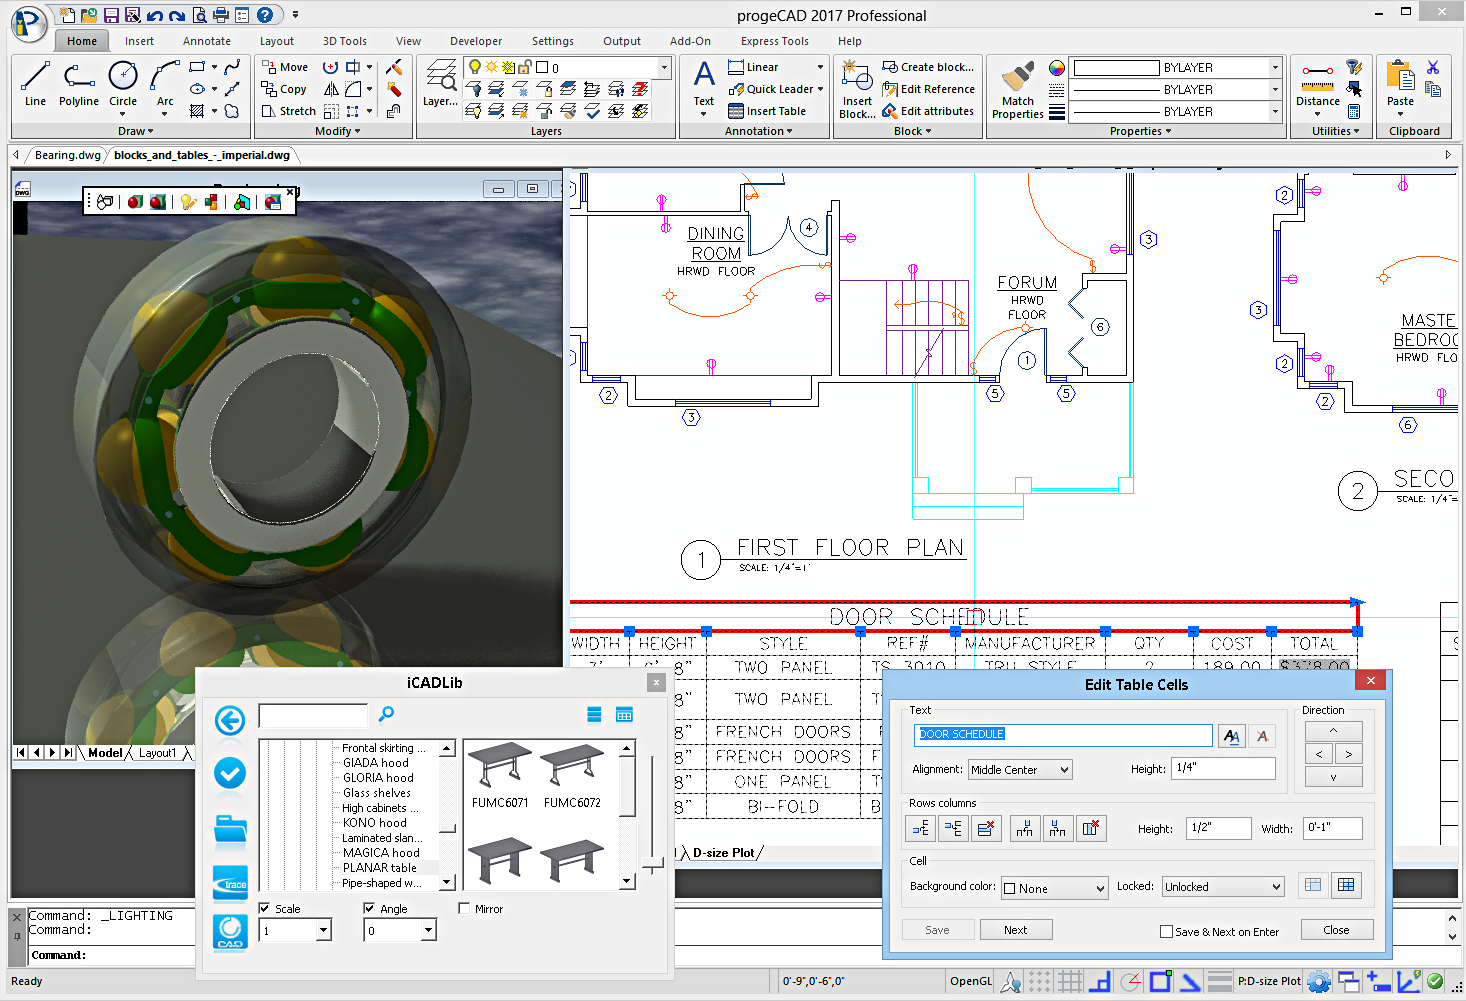 Progecad 2018 professional cad software 18 0 2 8 free for Software cad 3d